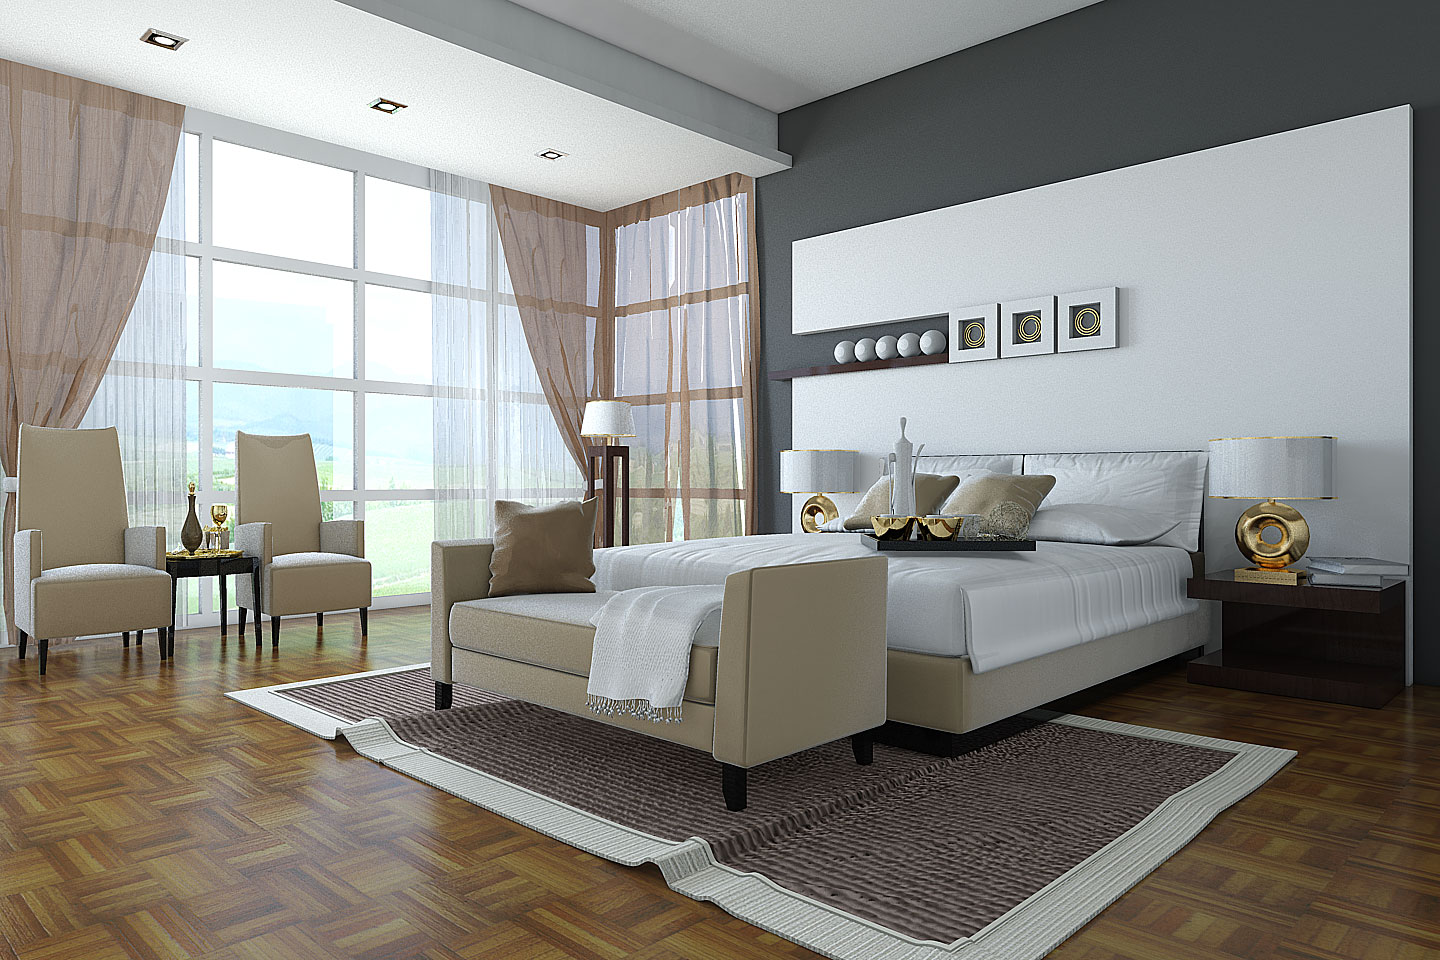 bedroom layout designs on Classic Bedroom Design